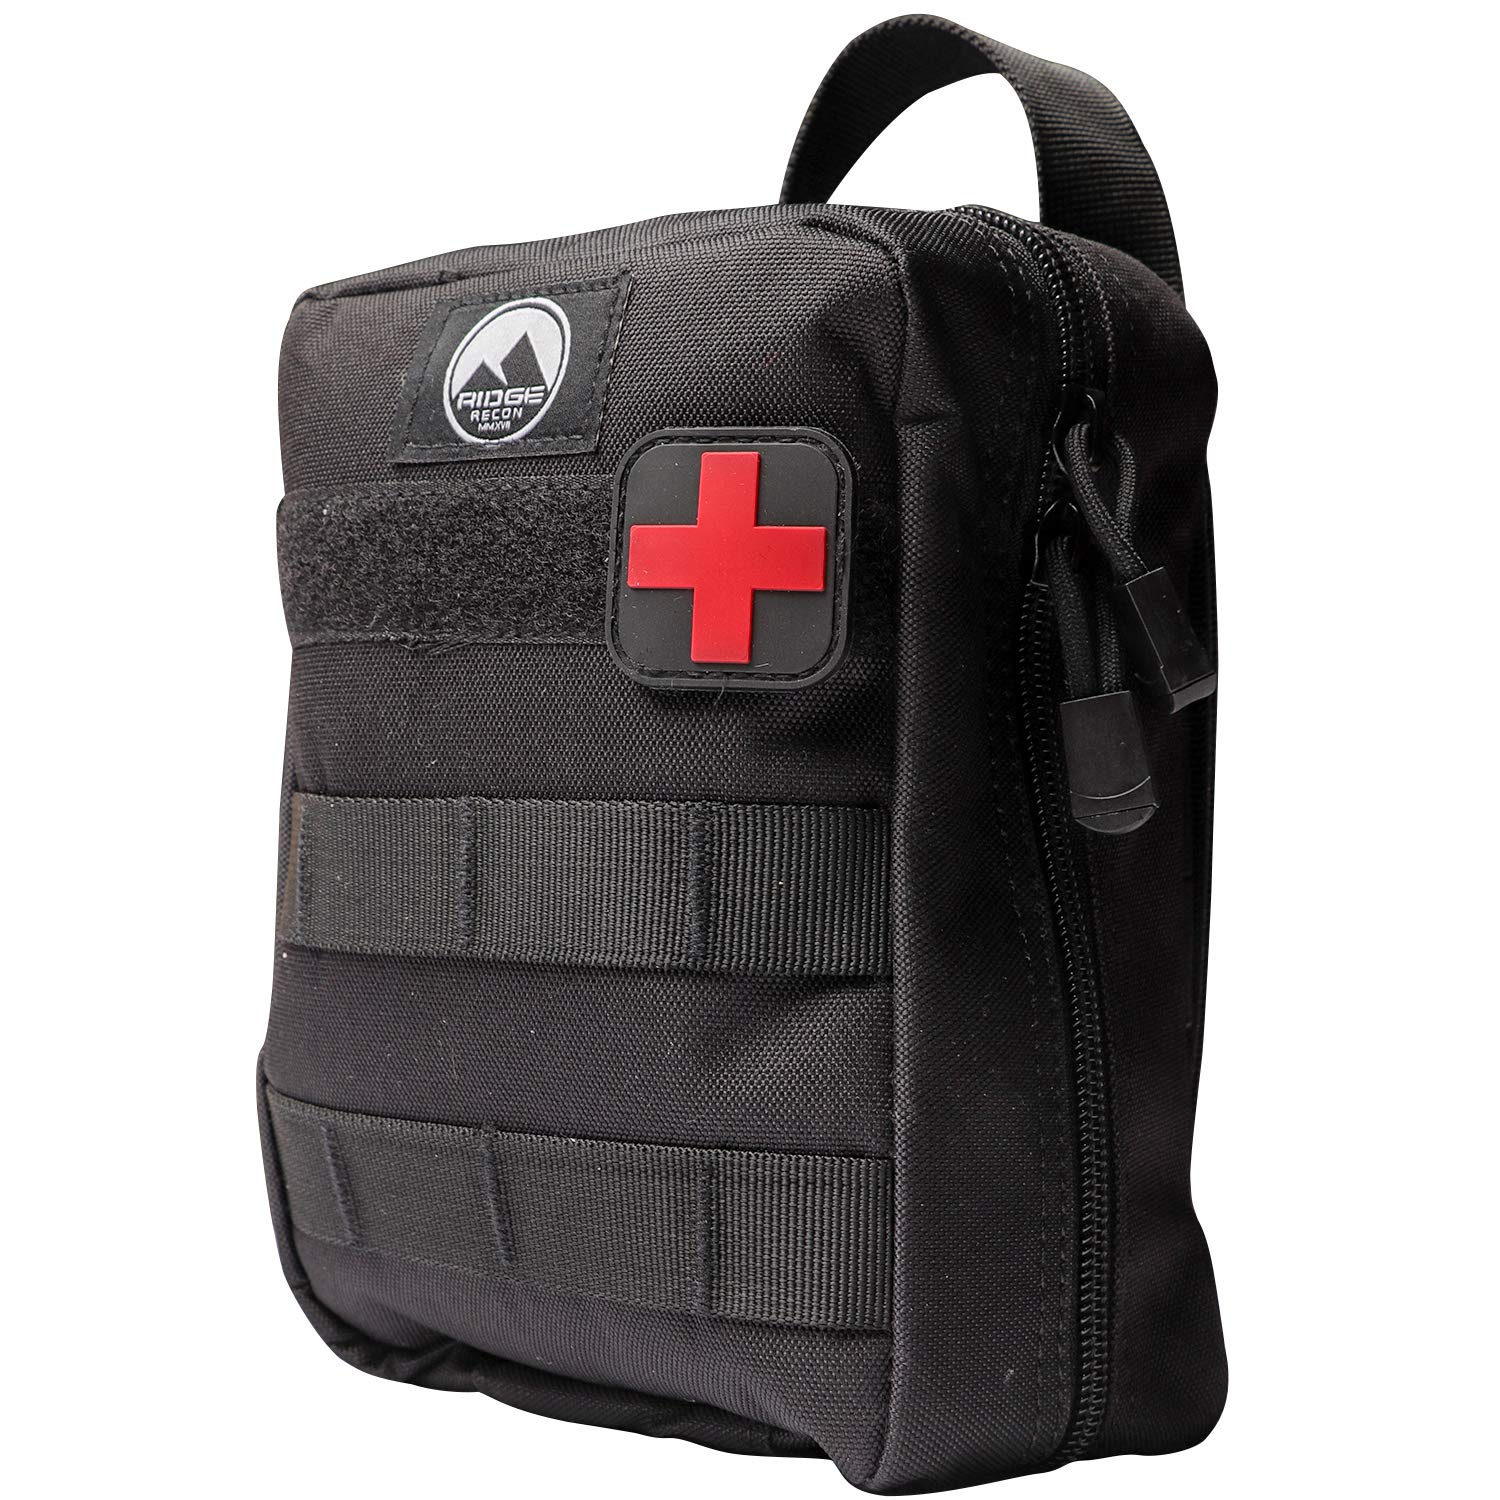 Ridge Recon First Aid Kit Fully Stocked for Emergency First Responder IFAK | Care for Self and Others in Emergencies | Includes Israeli Bandage, CAT Tourniquet and Tactical Bag with MOLLE Attachments by Ridge Recon